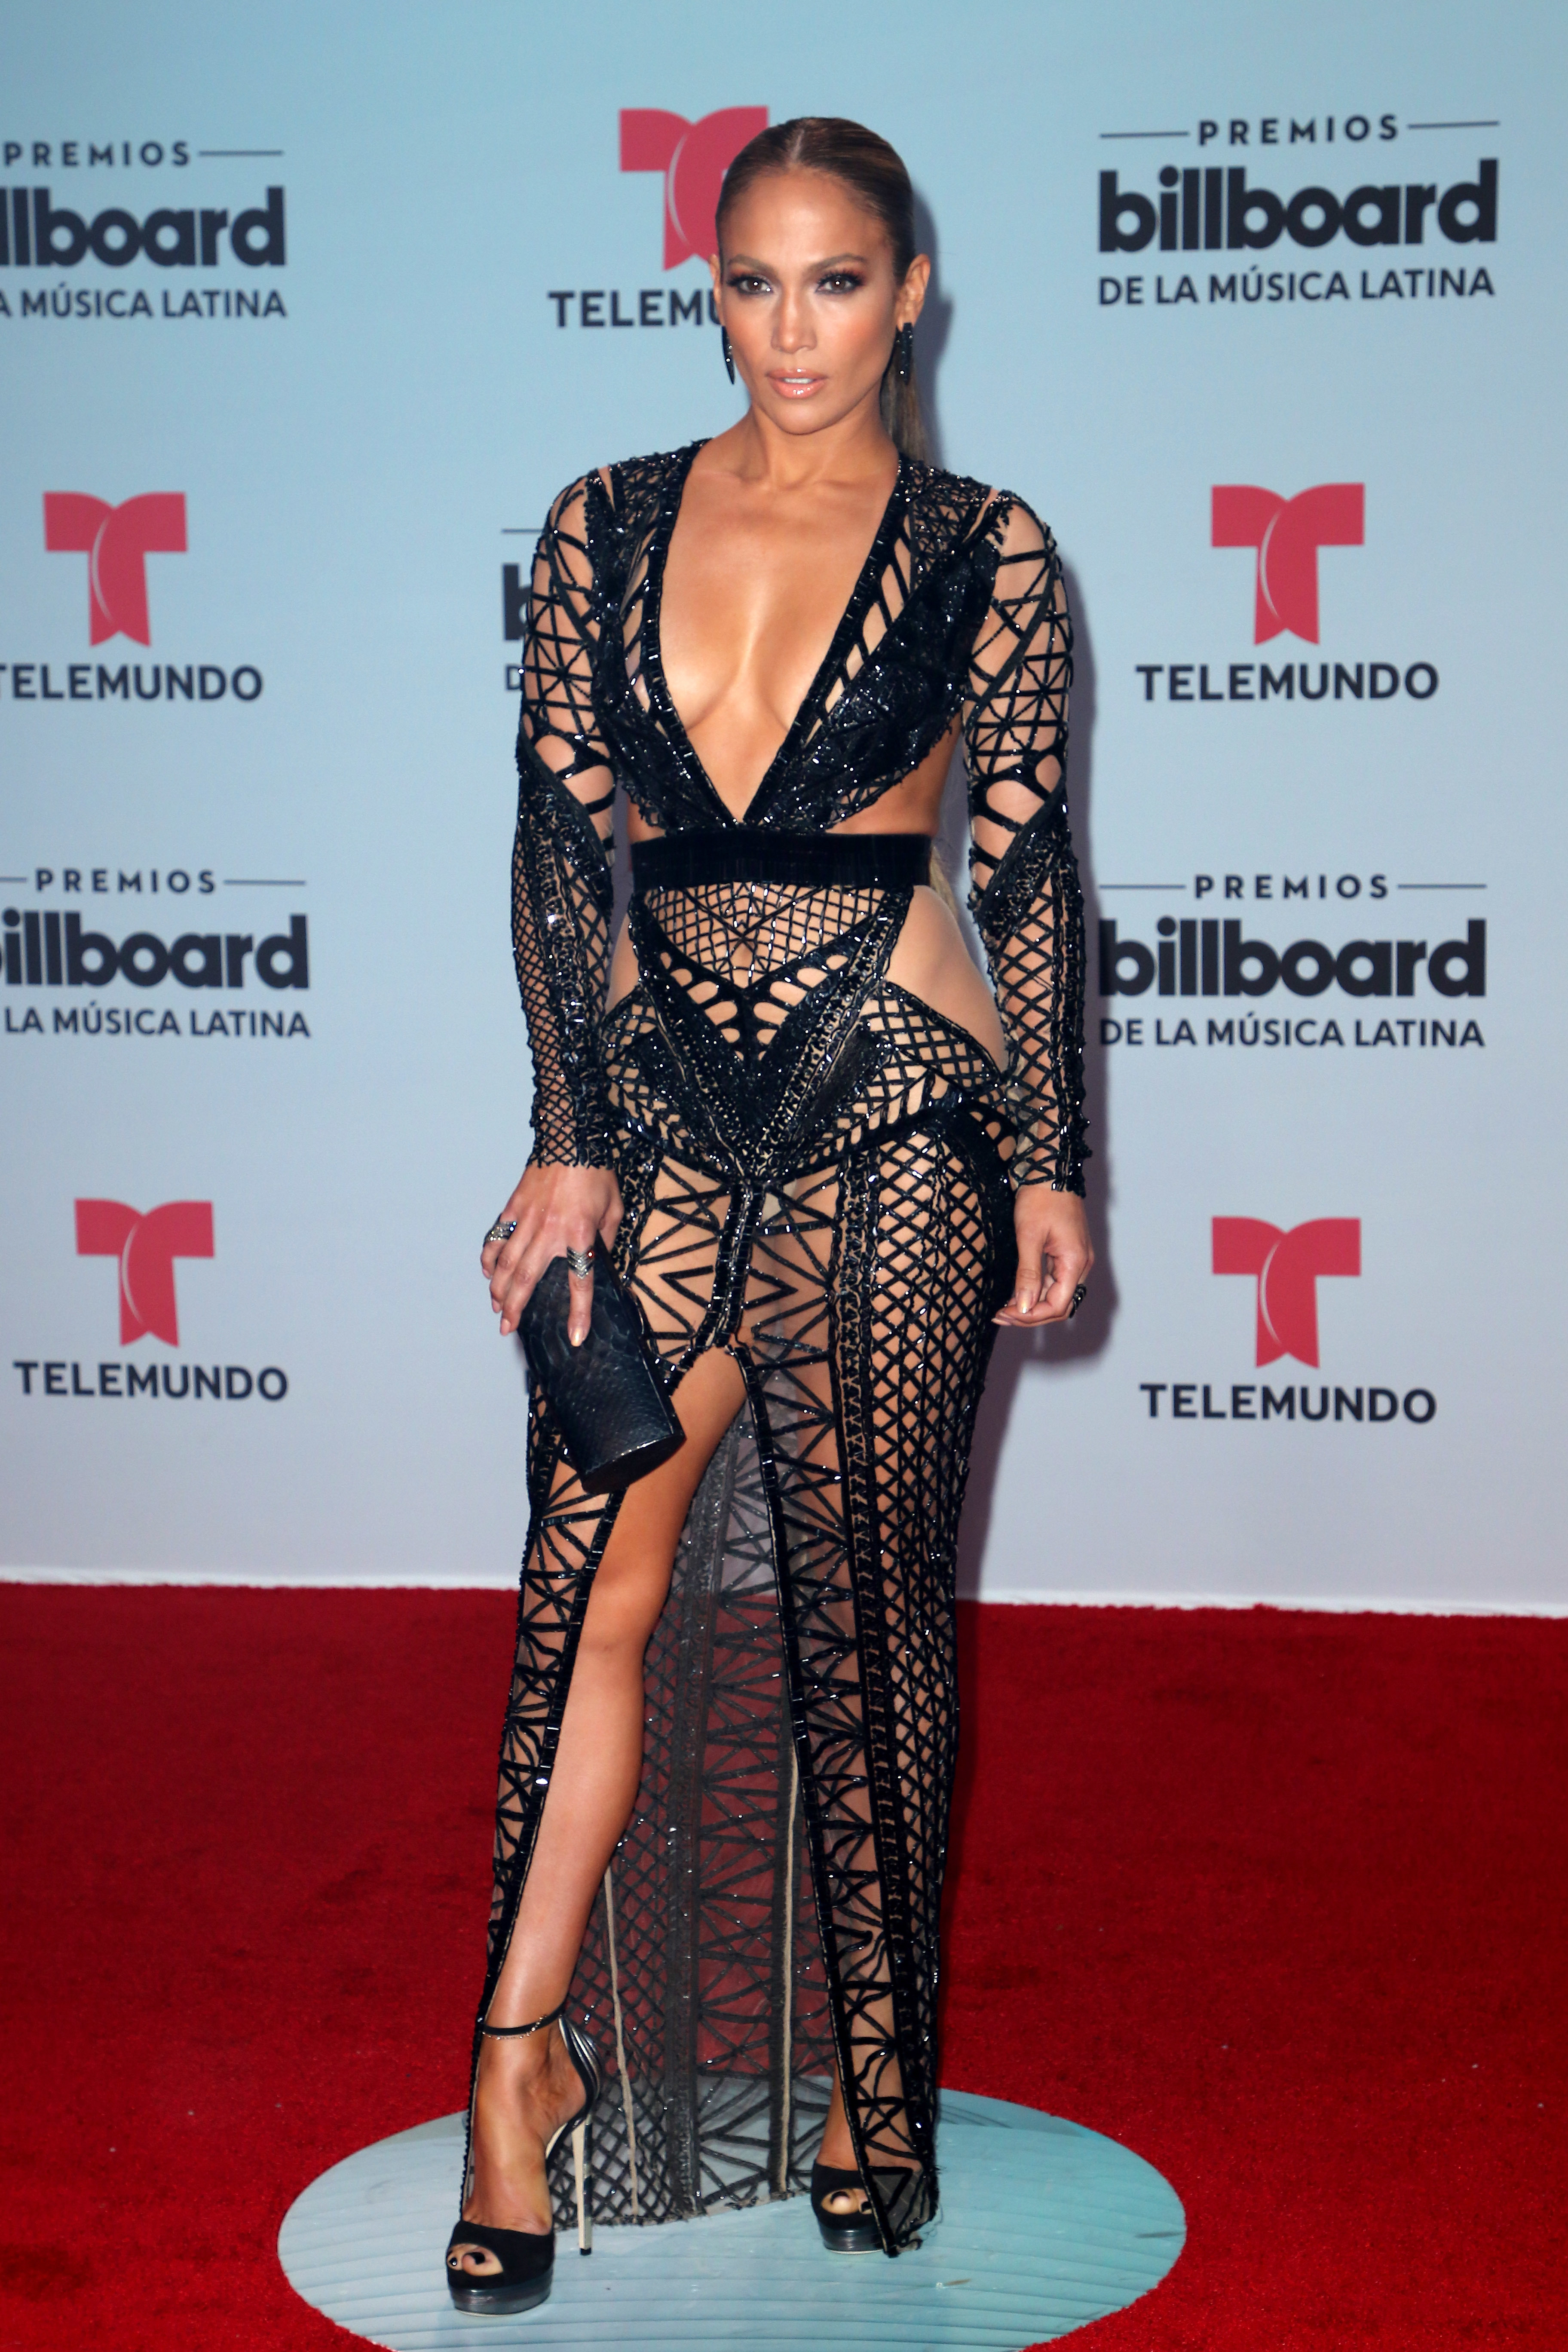 878fc82d3e Most memorable looks from past Billboard Latin Music Awards ...